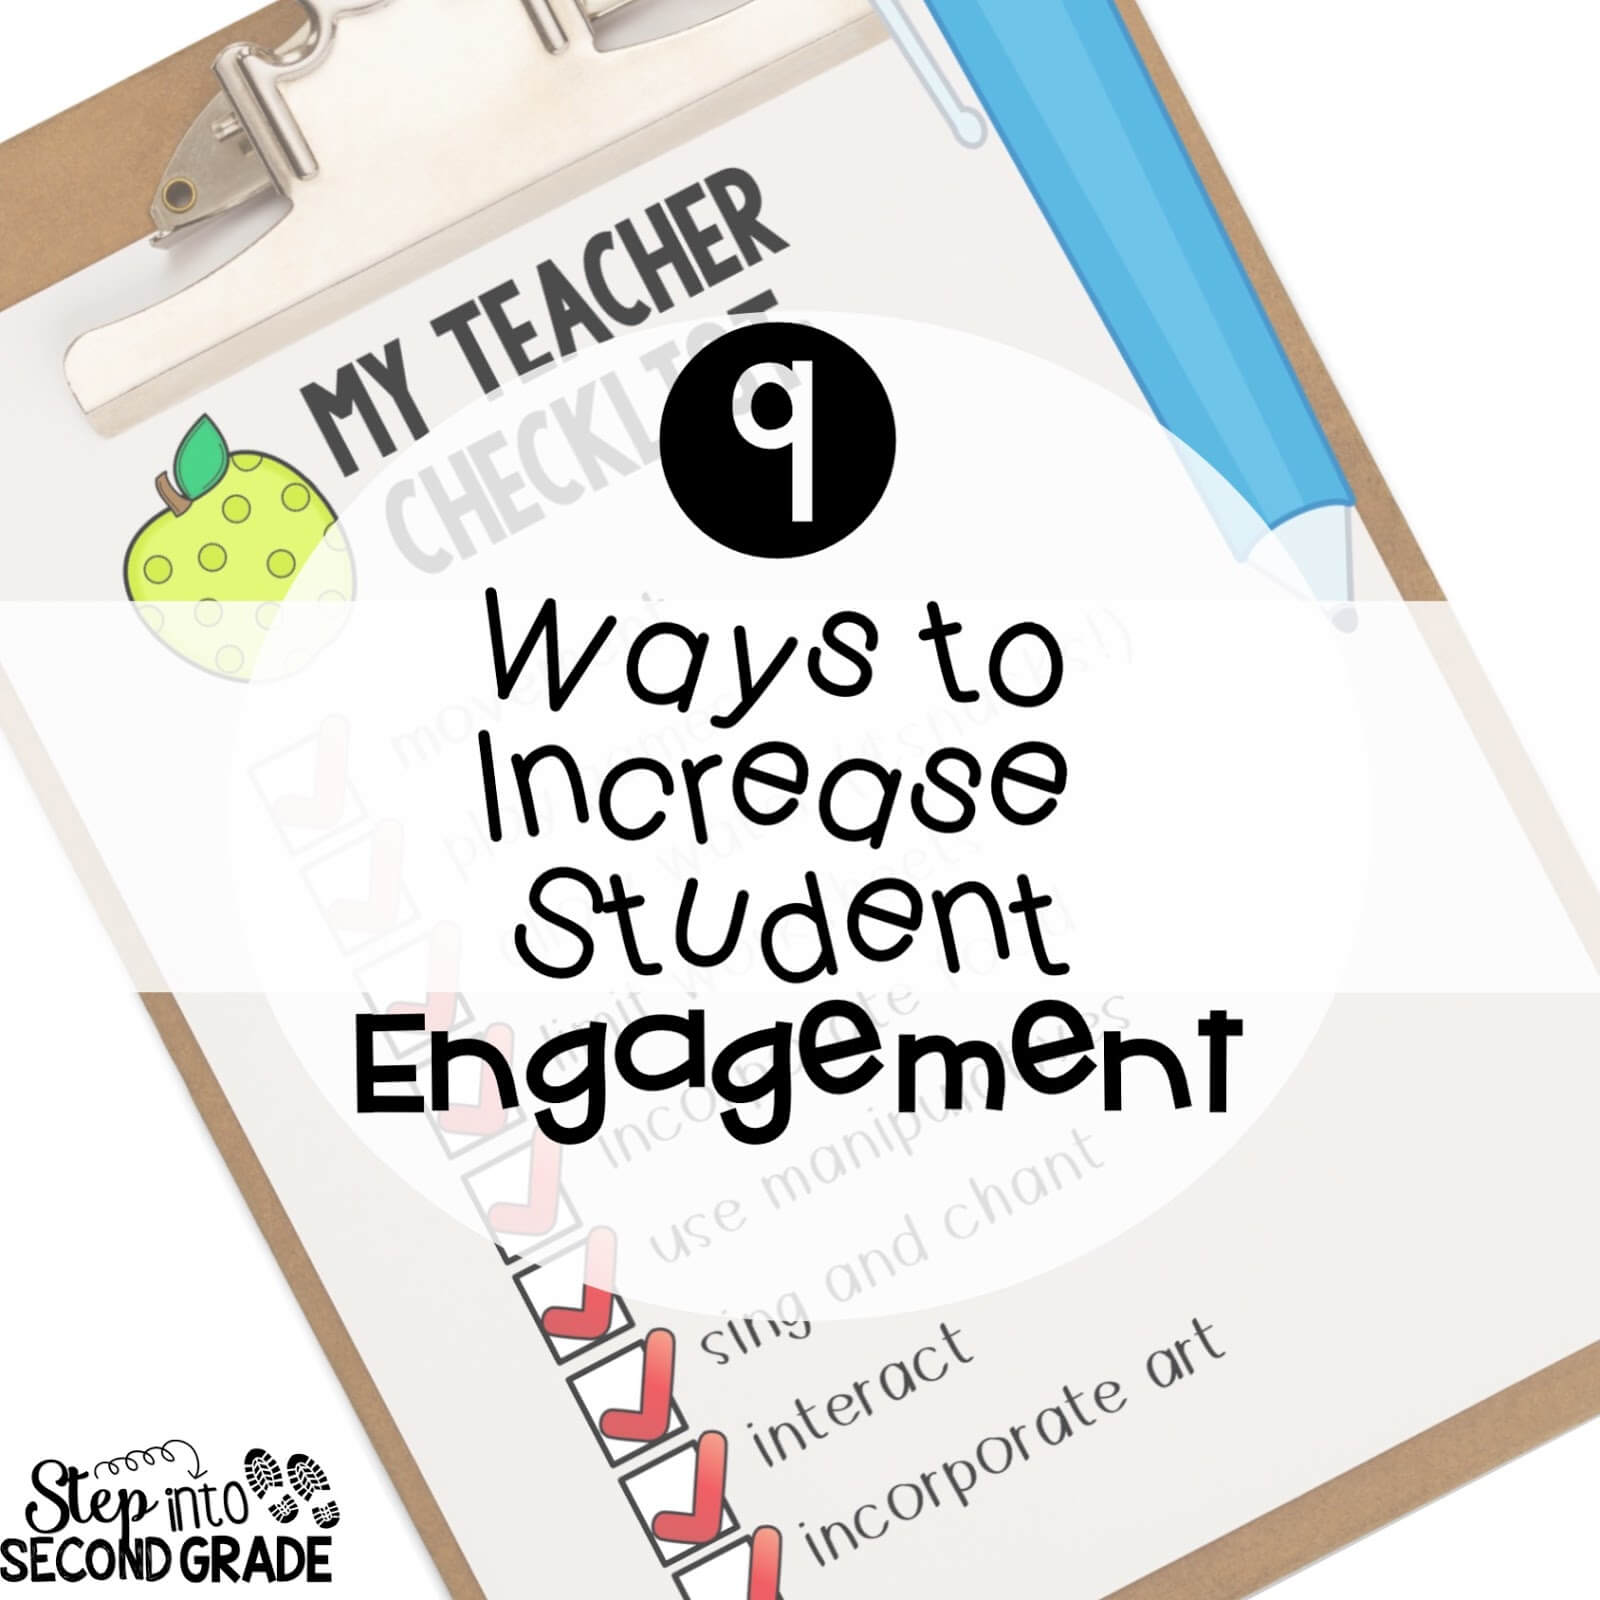 hight resolution of 9 Ways to Increase Student Engagement - Amy Lemons